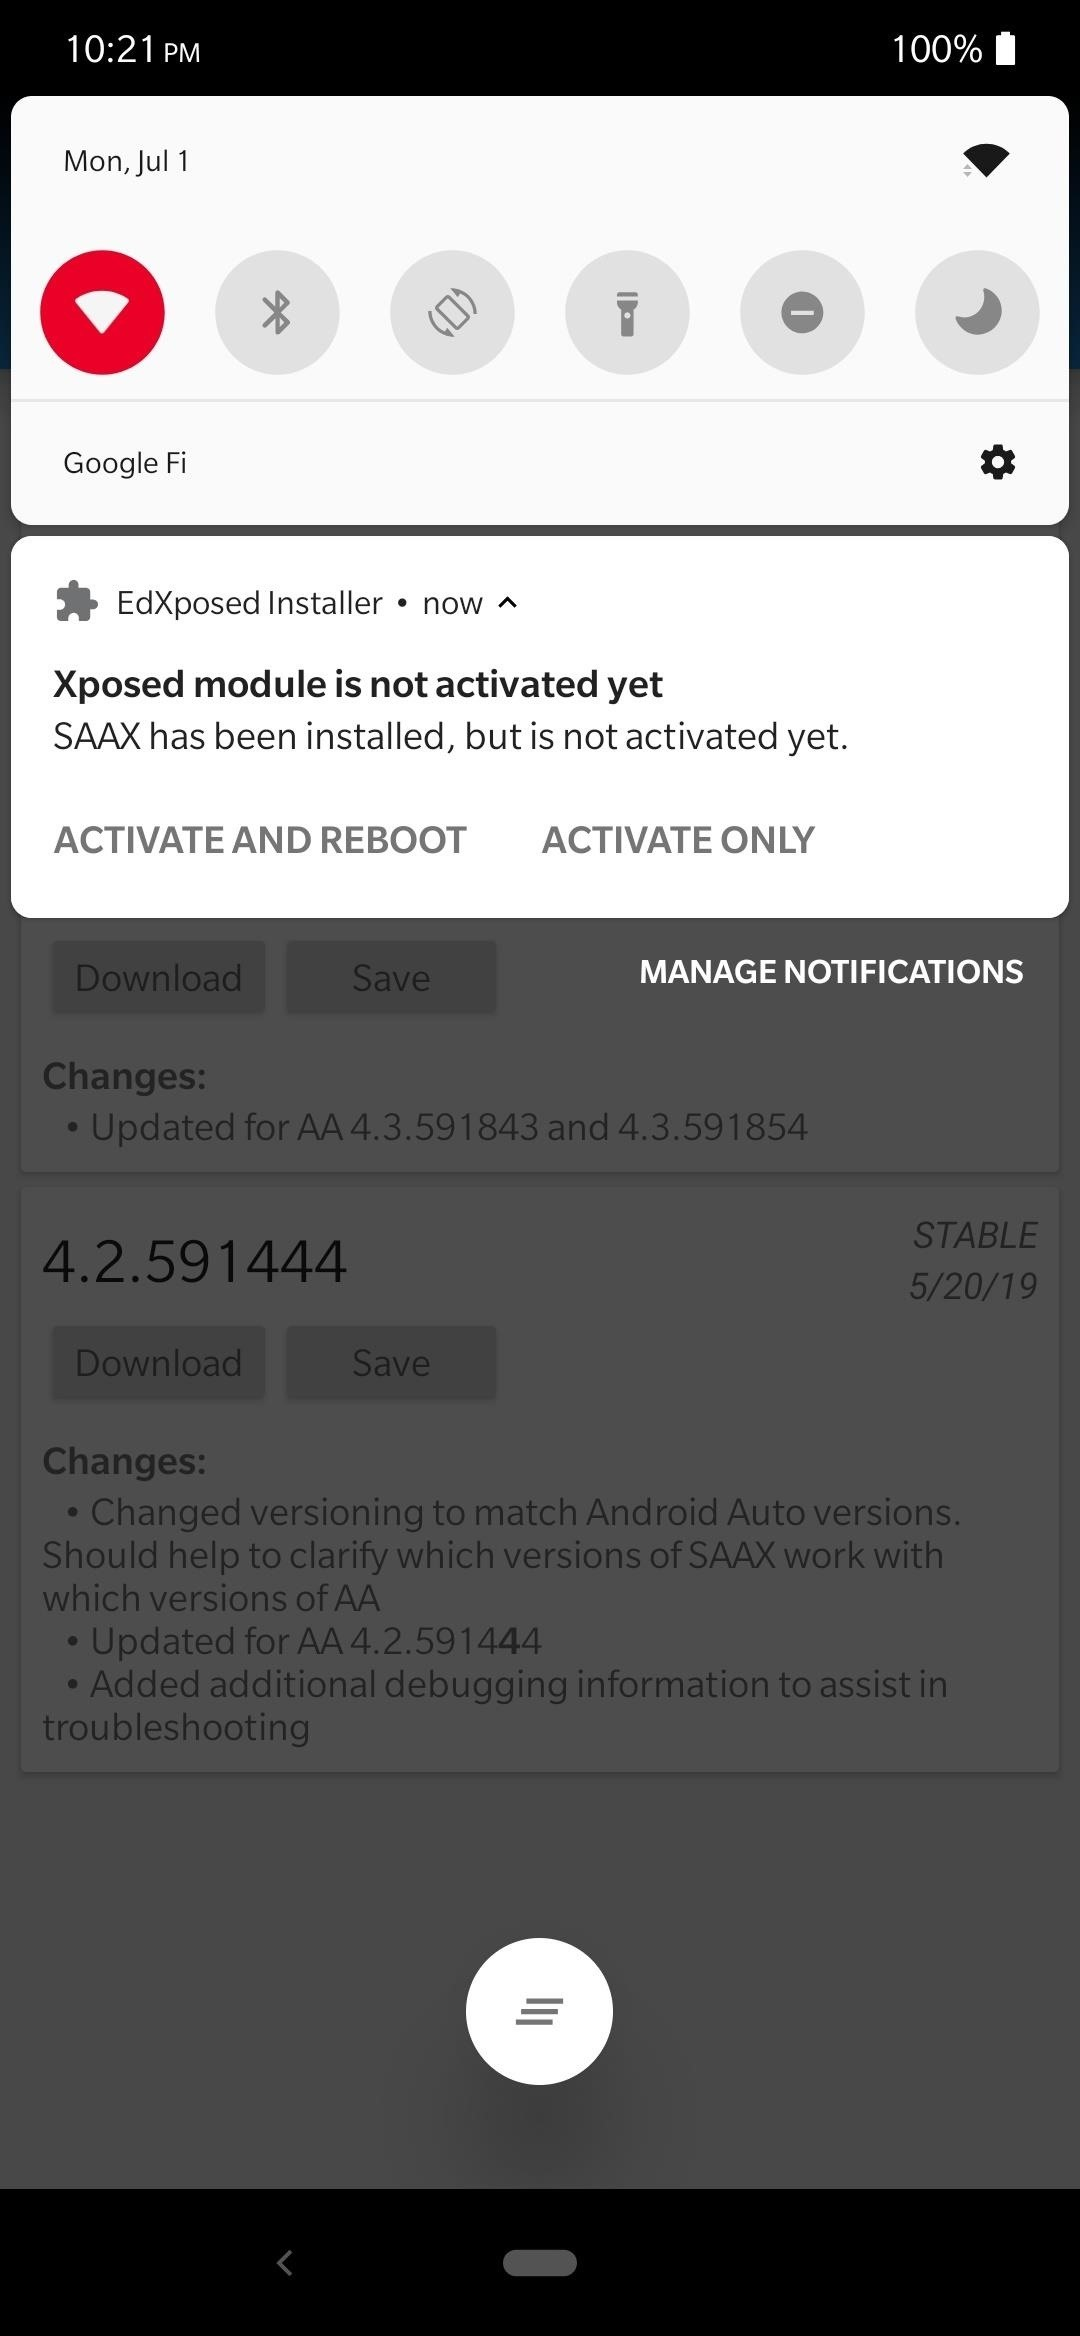 How to Install Xposed on Almost Any Phone Running Android 9.0